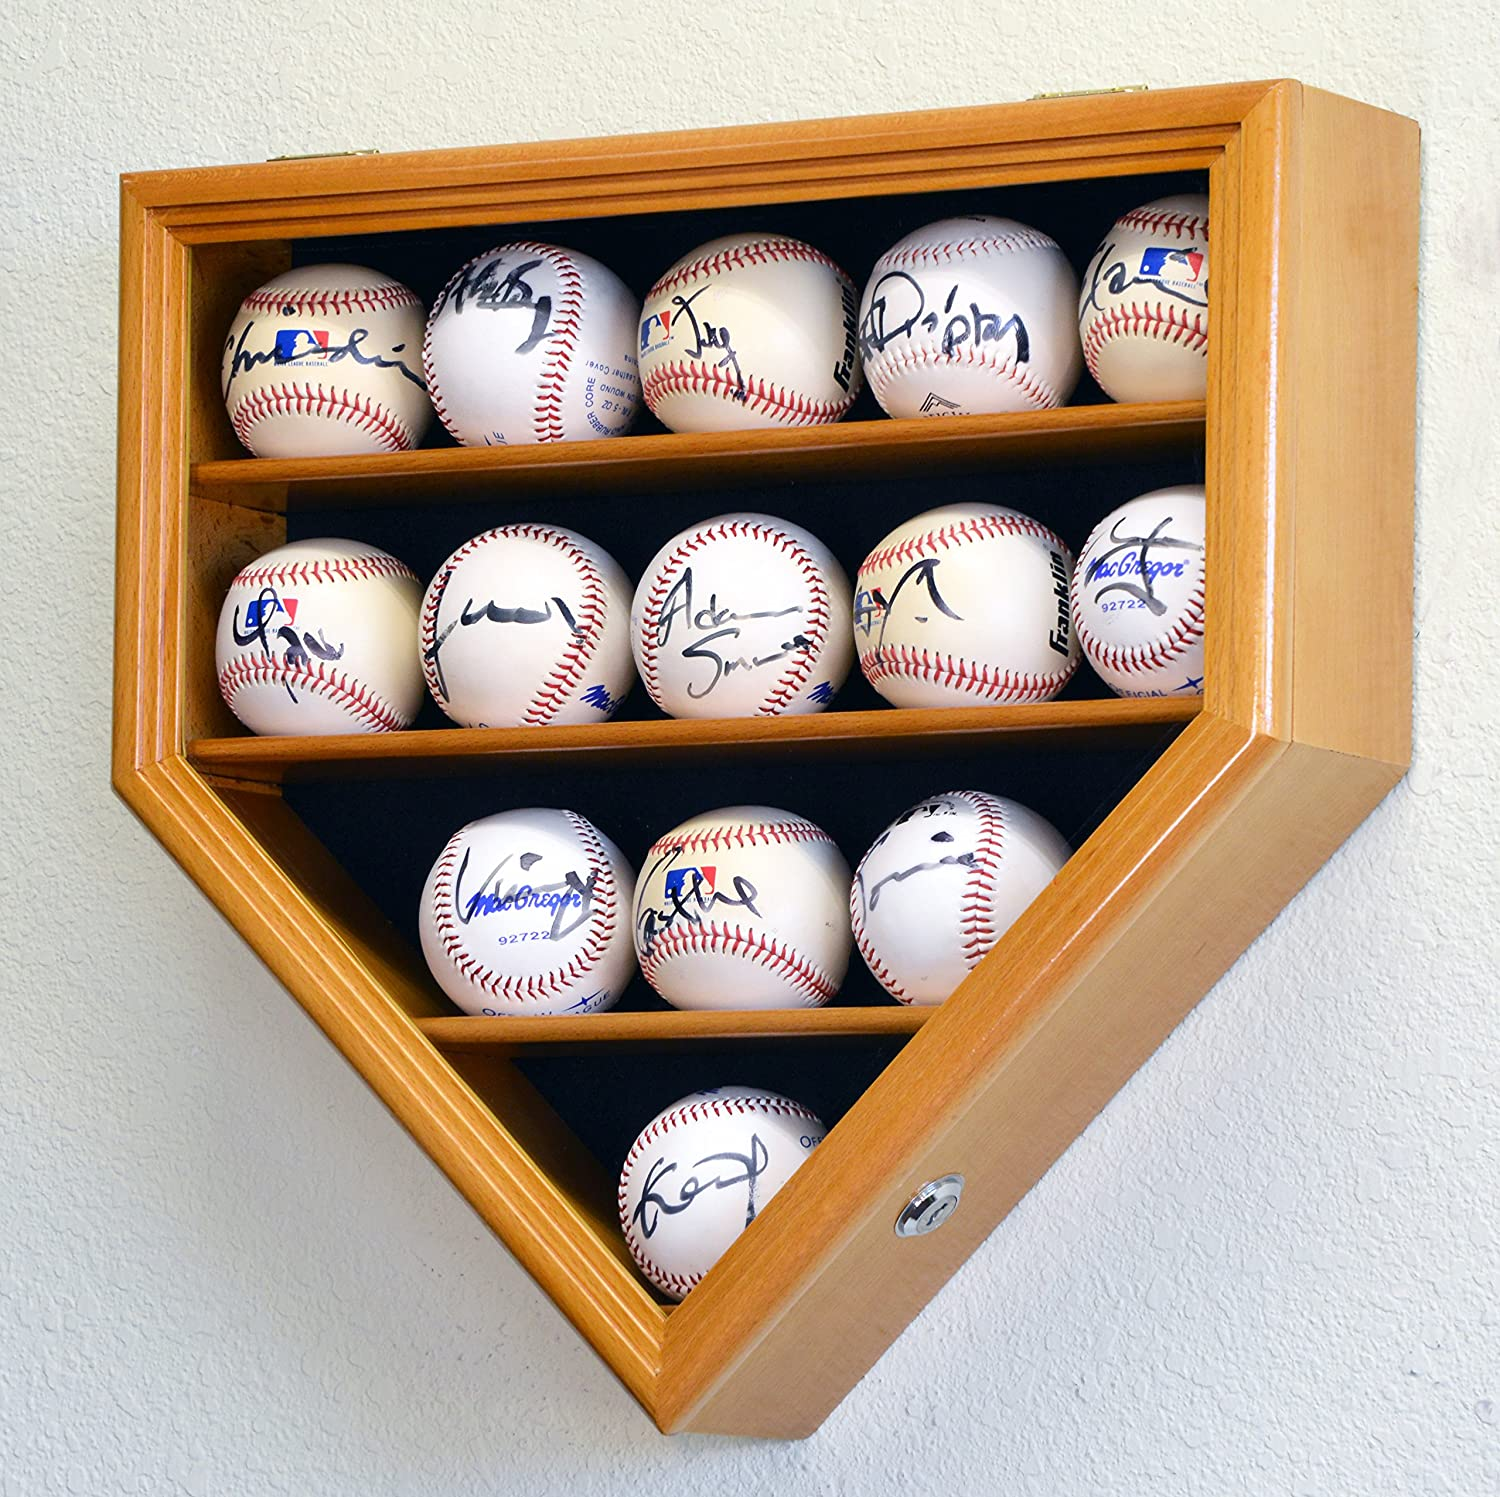 14 Baseball Ball Display Case Cabinet Holder Wall Rack Home Plate Shaped w/98% UV Protection- Lockable -Oak